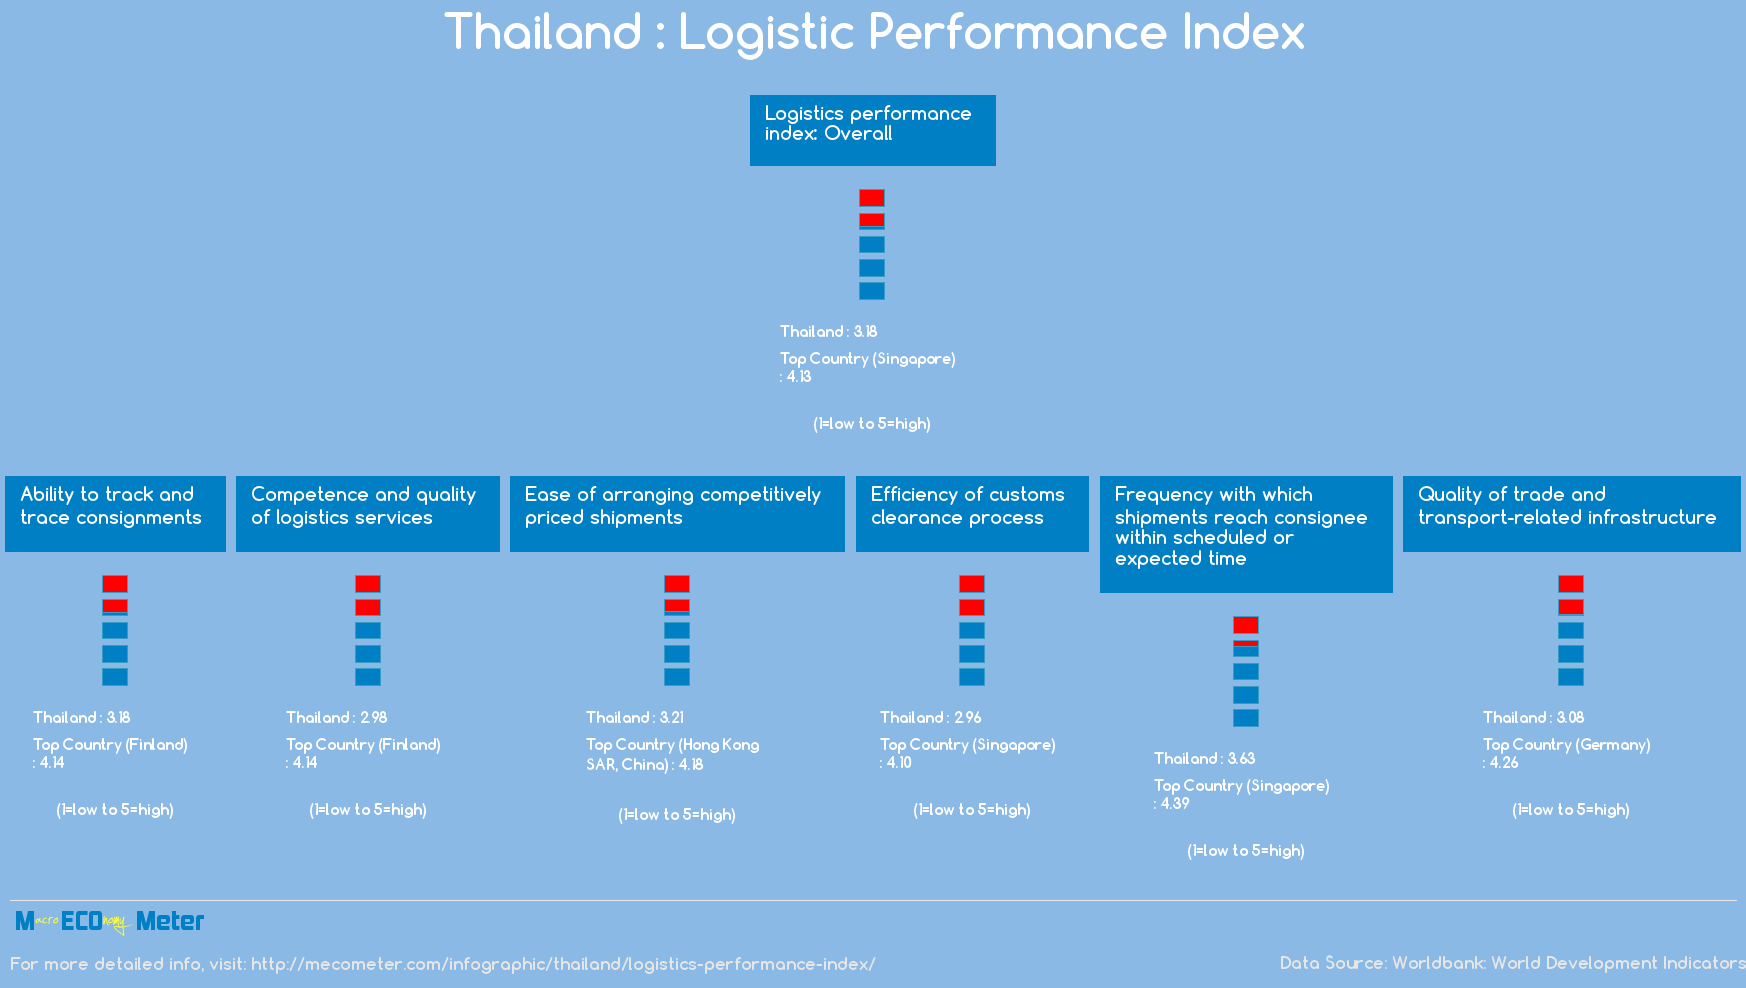 Thailand : Logistic Performance Index